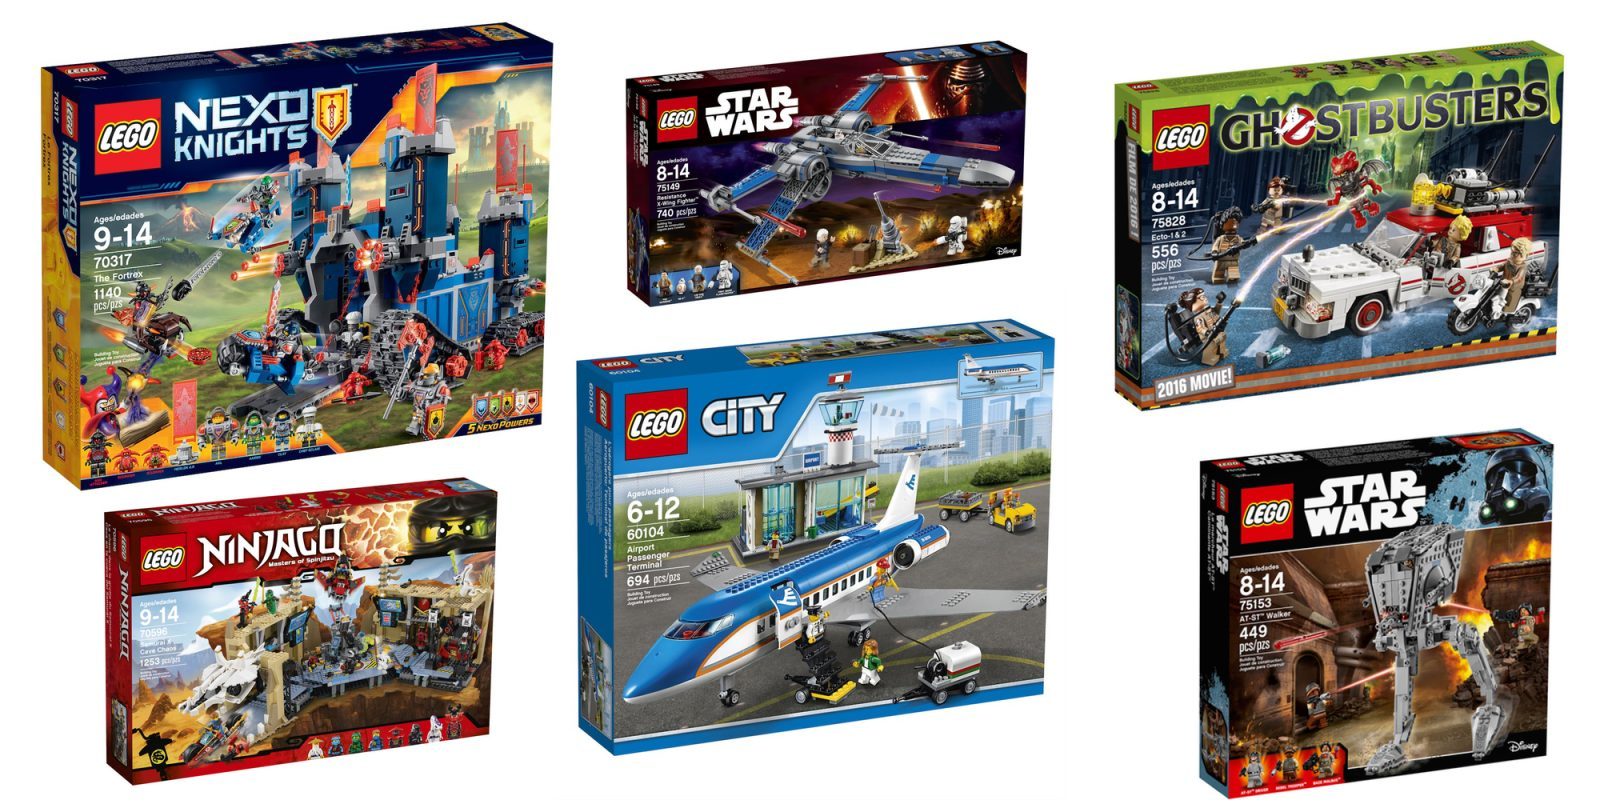 All Toys Toys R Us : Toys r us takes off lego star wars city ninjago sets